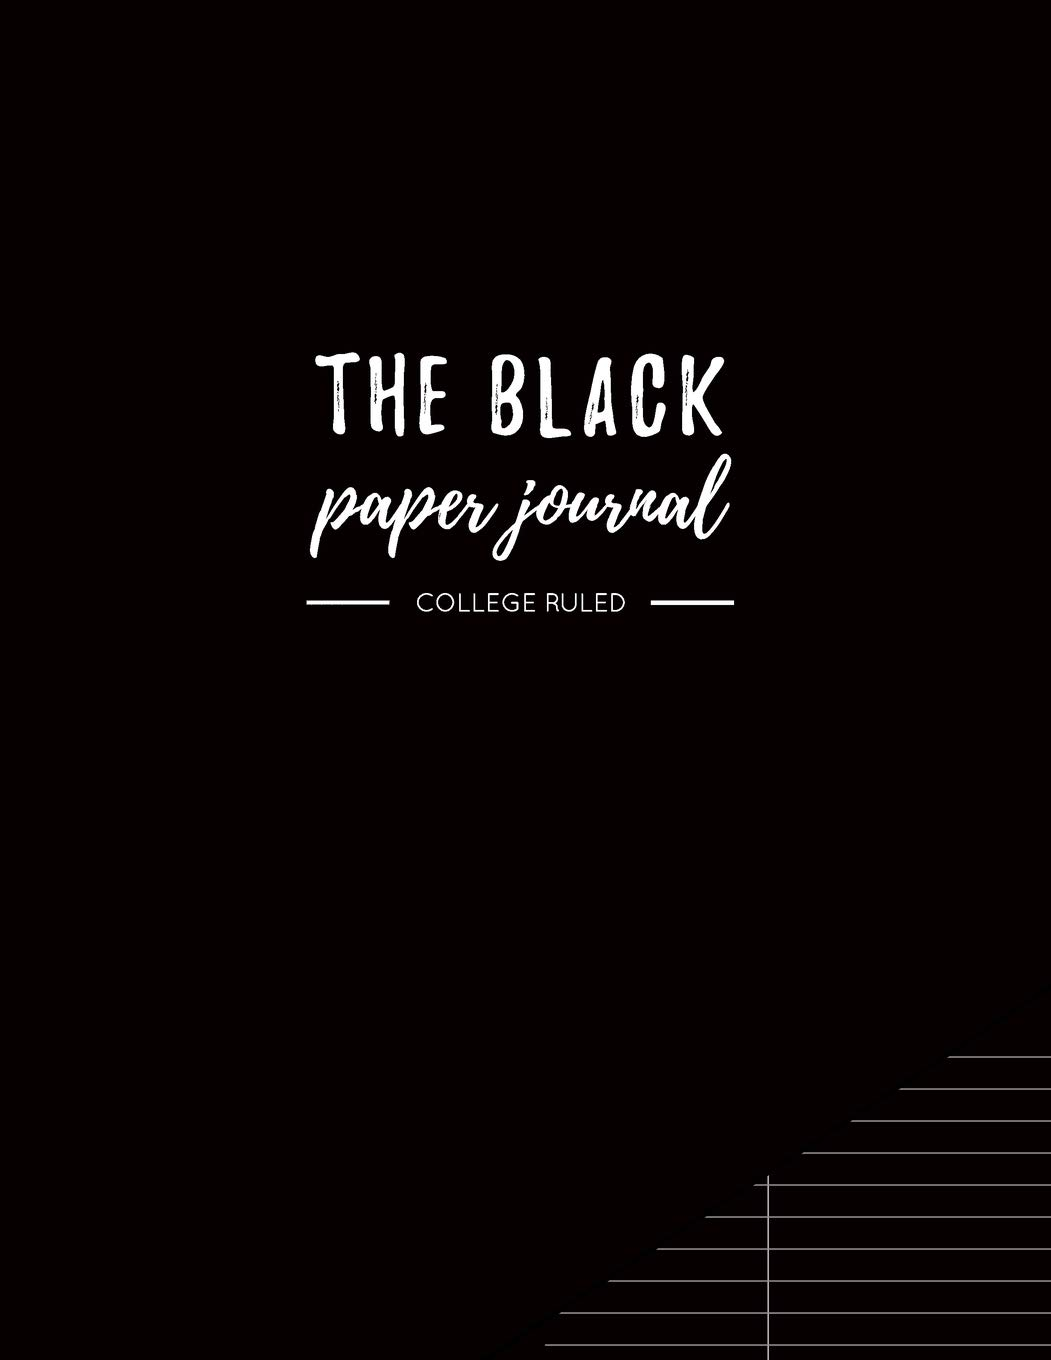 Black Paper Journal College Ruled product image